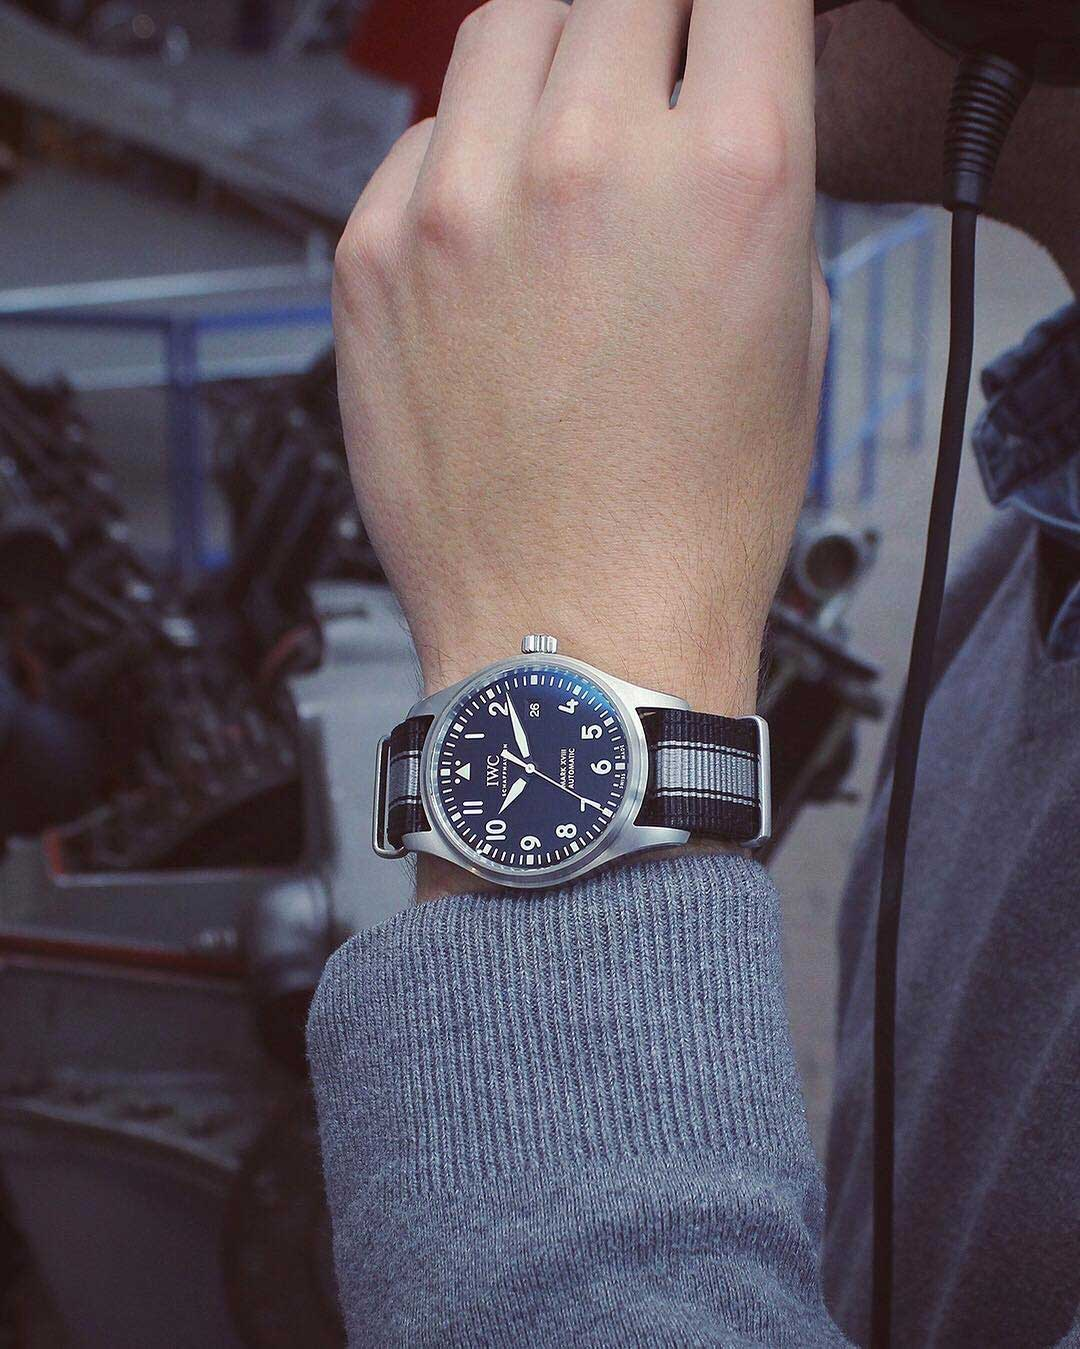 iwc dive watch